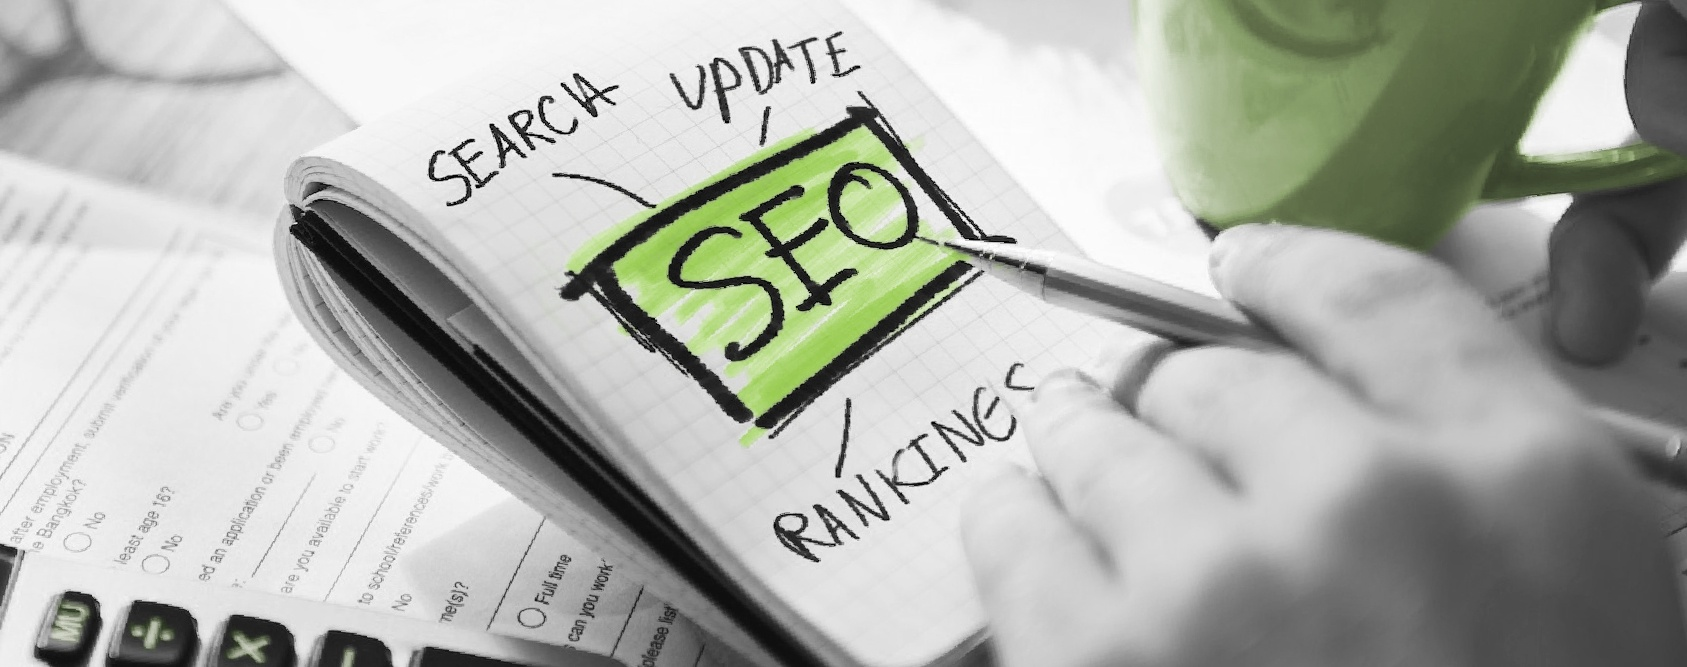 The Top 10 Actionable SEO Techniques - Image-01-1.jpg